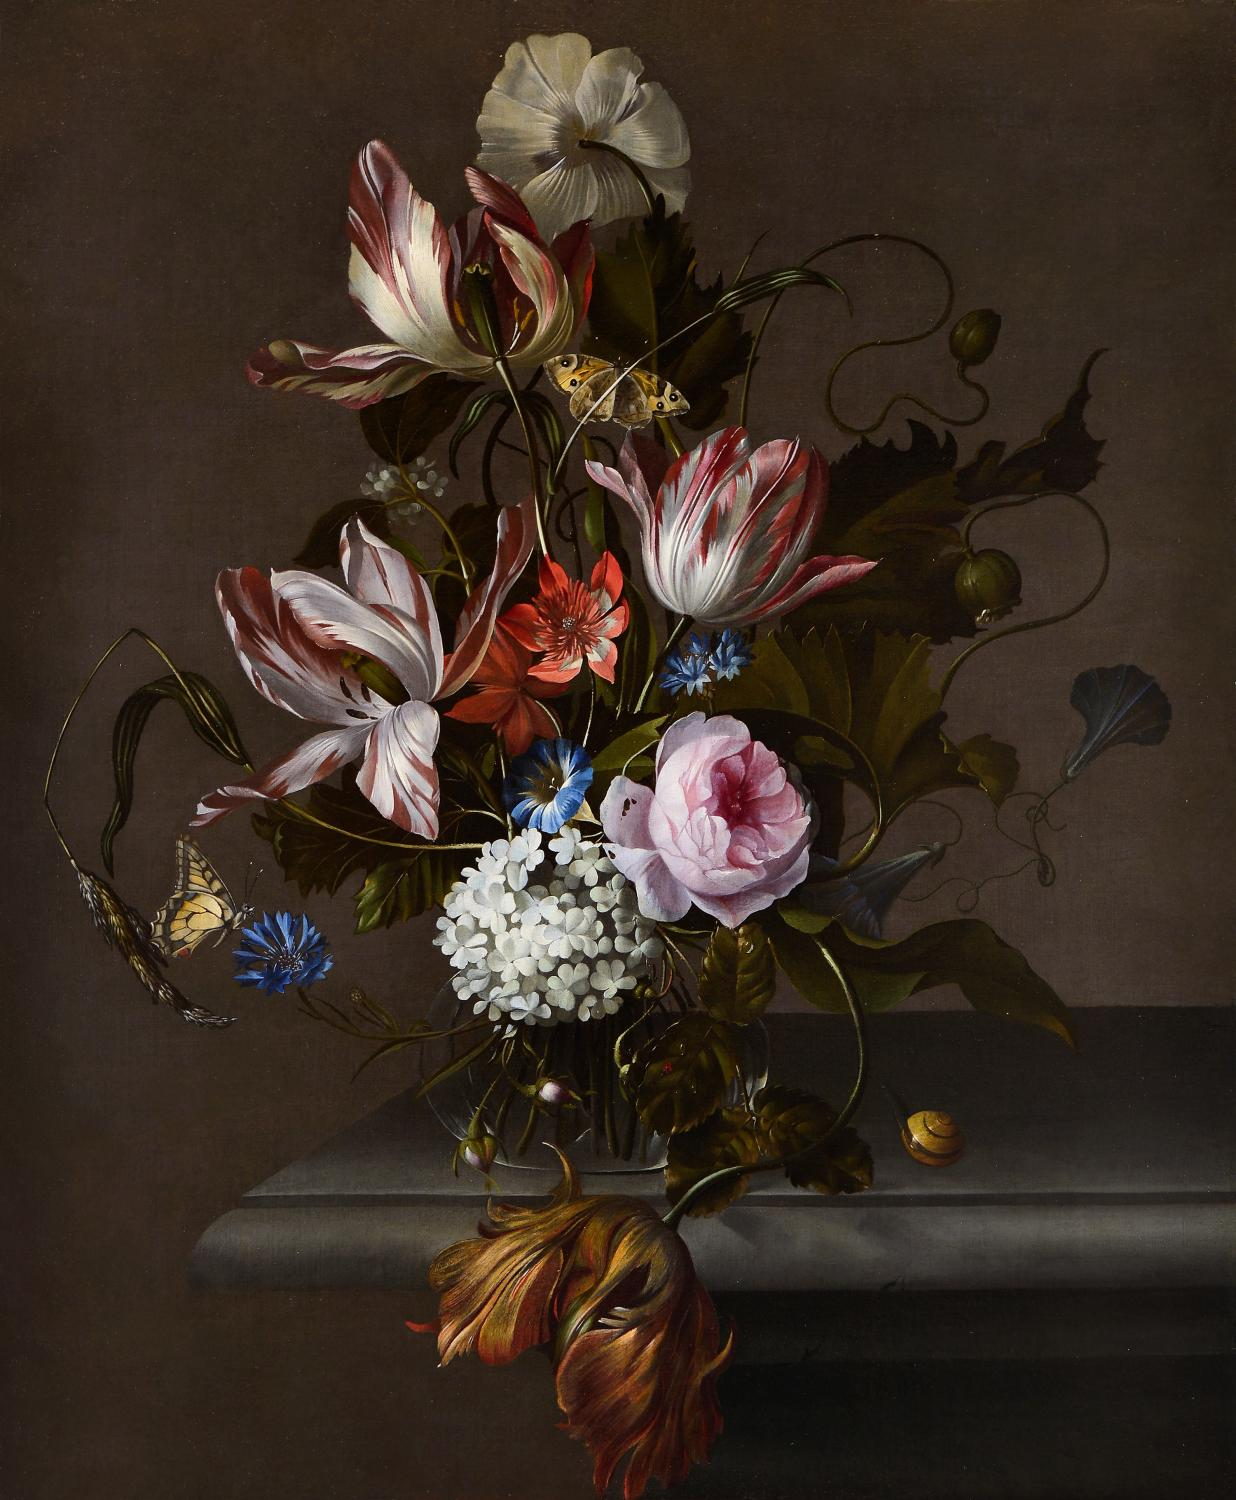 Anna Ruysch, Still Life of Flowers in a Glass Vase on a Stone Table Ledge (detail), ca. 1690s. Oil on canvas. Museum Purchase through the John Needles Chester Fund and the Richard M. and Rosann Gelvin Noel Krannert Art Museum Fund.